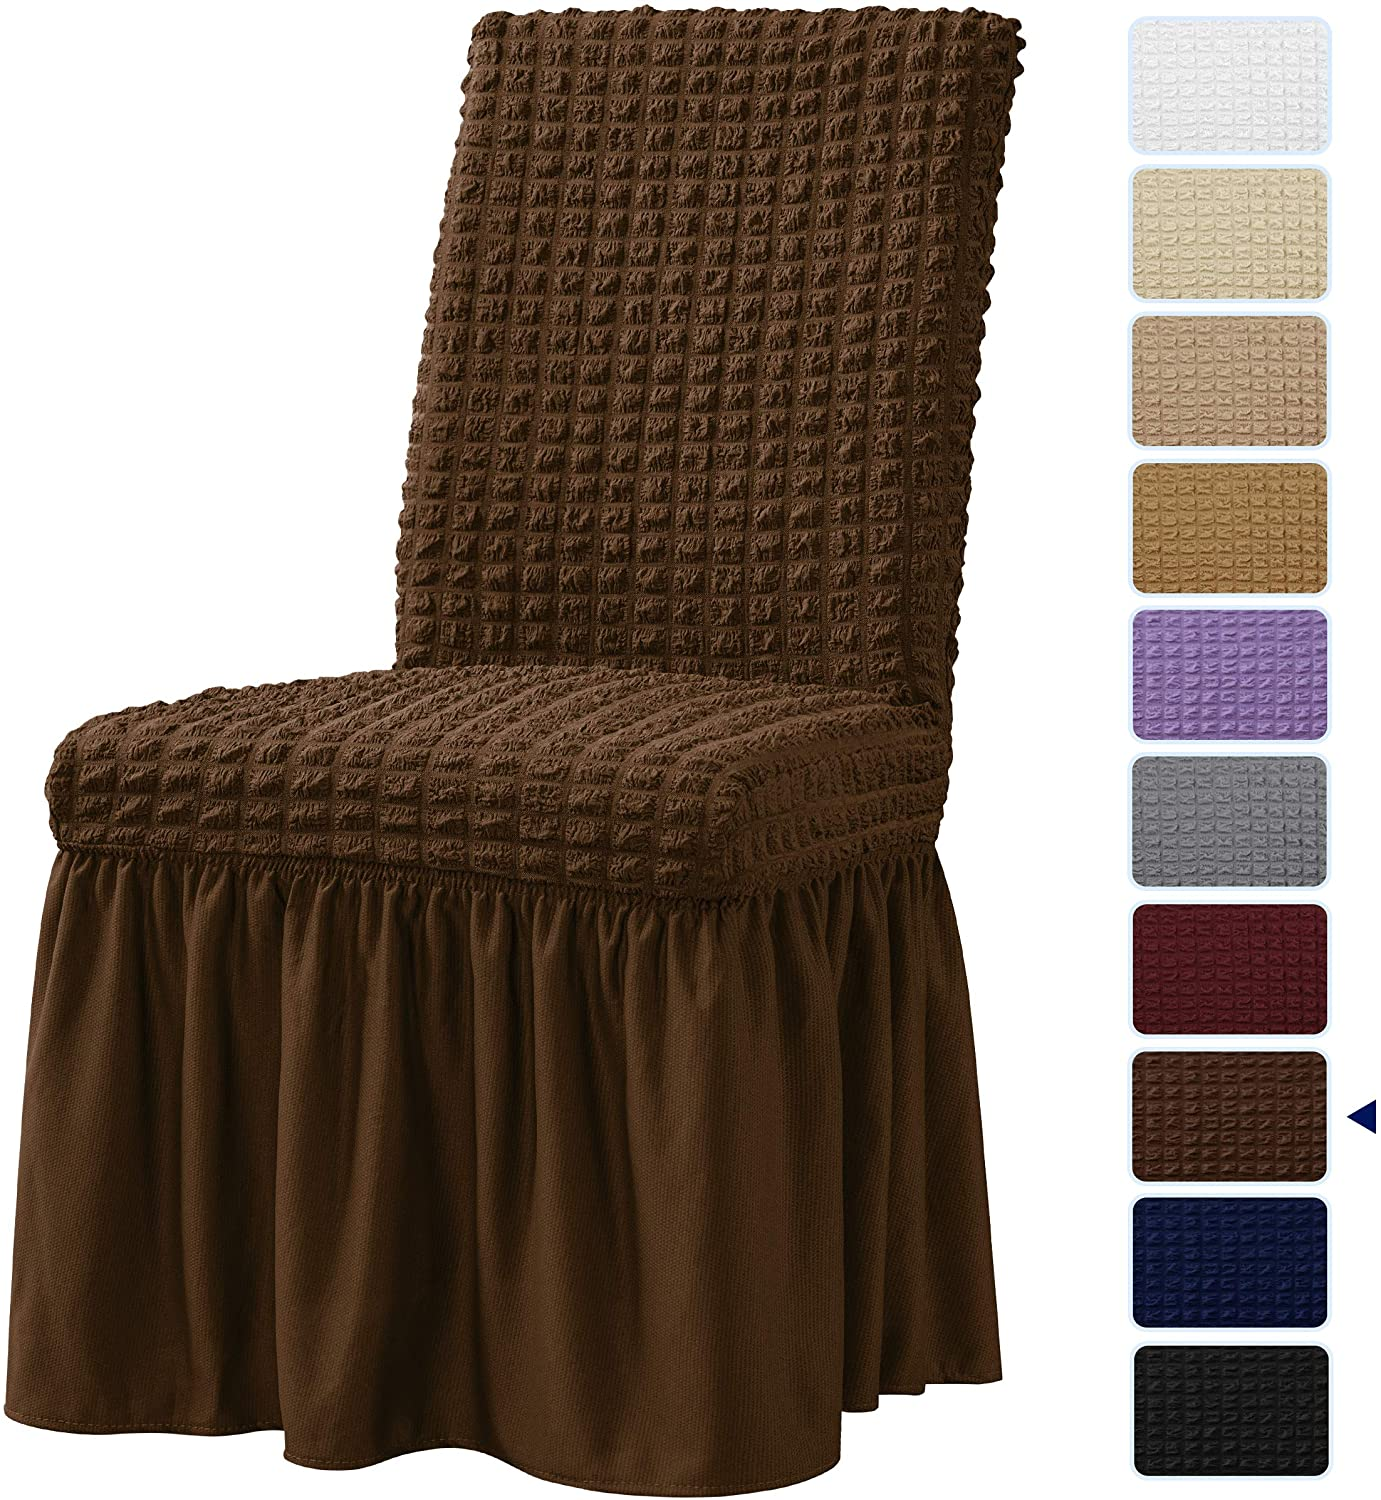 subrtex 2 Pcs Stretchy Dining Room Chair Covers with Long Skirt, Removable Washable Universal Anti-Dirty Parsons Slipcovers for Home Kitchen Party (2, Chocolate)